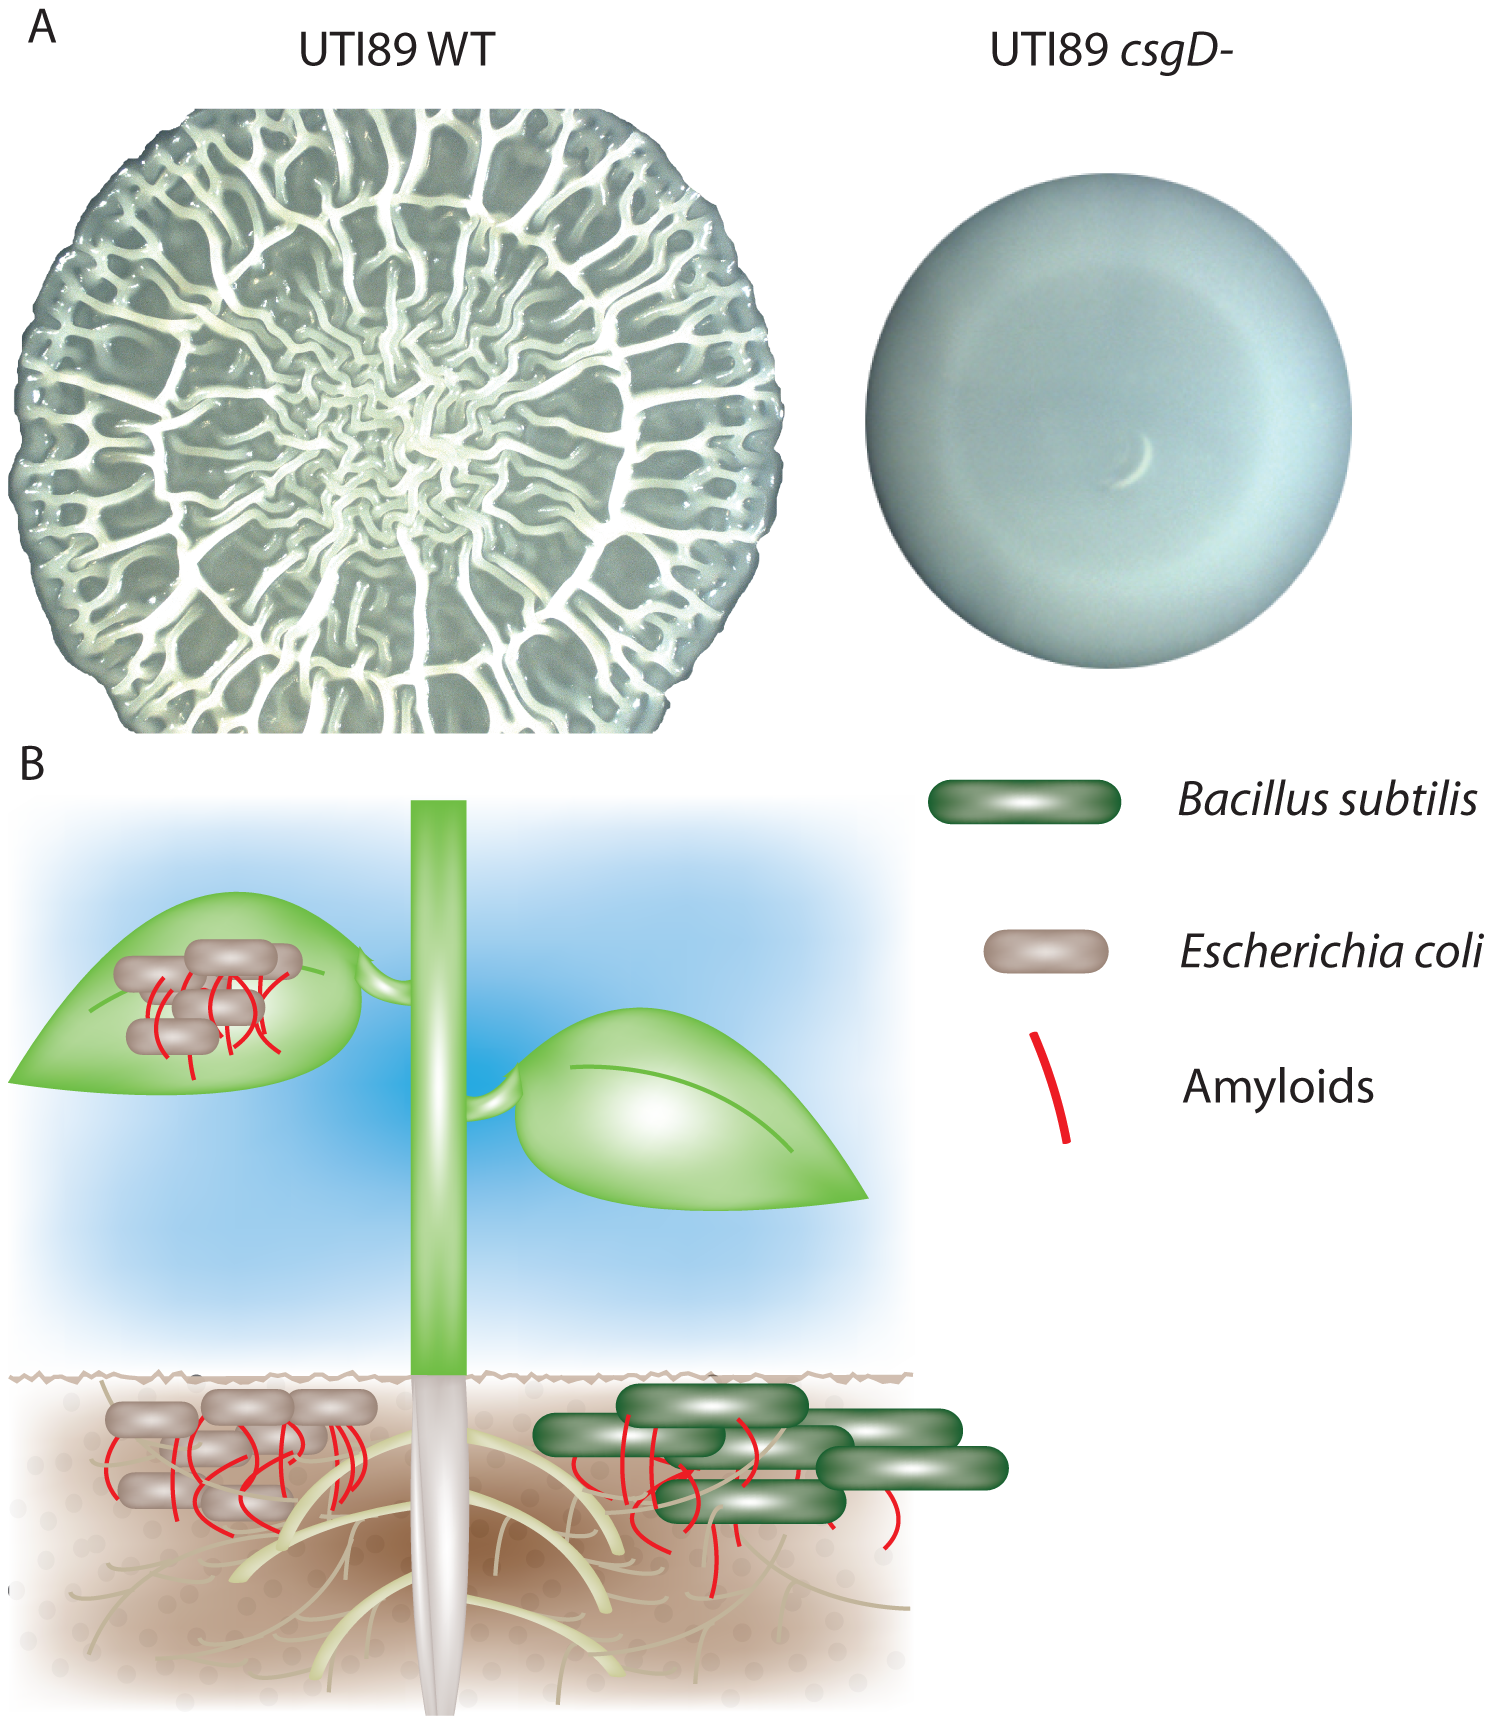 Bacterial amyloids are utilized in multiple environments.